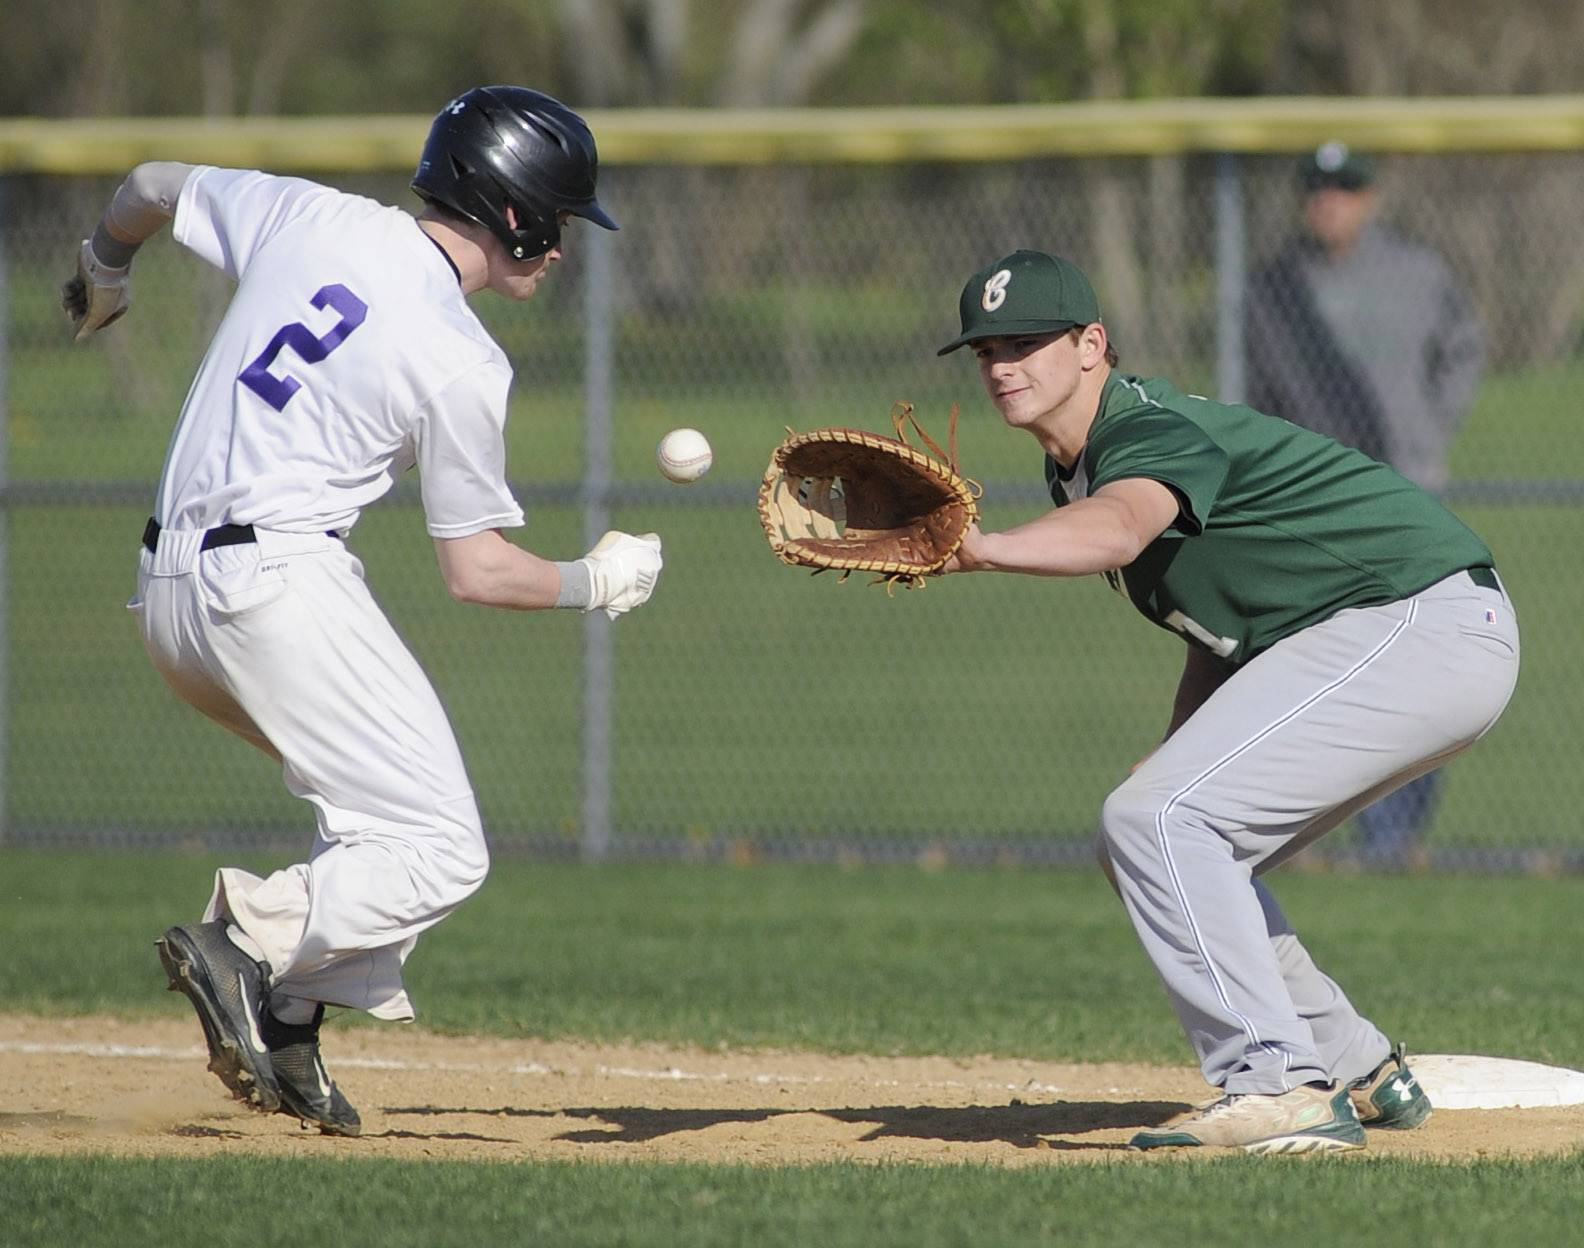 Hampshire's RJ Consigny beats the ball and ends up safe back on first base as Grayslake Central's Kyle Clark takes the throw in the second inning at Hampshire on Friday.